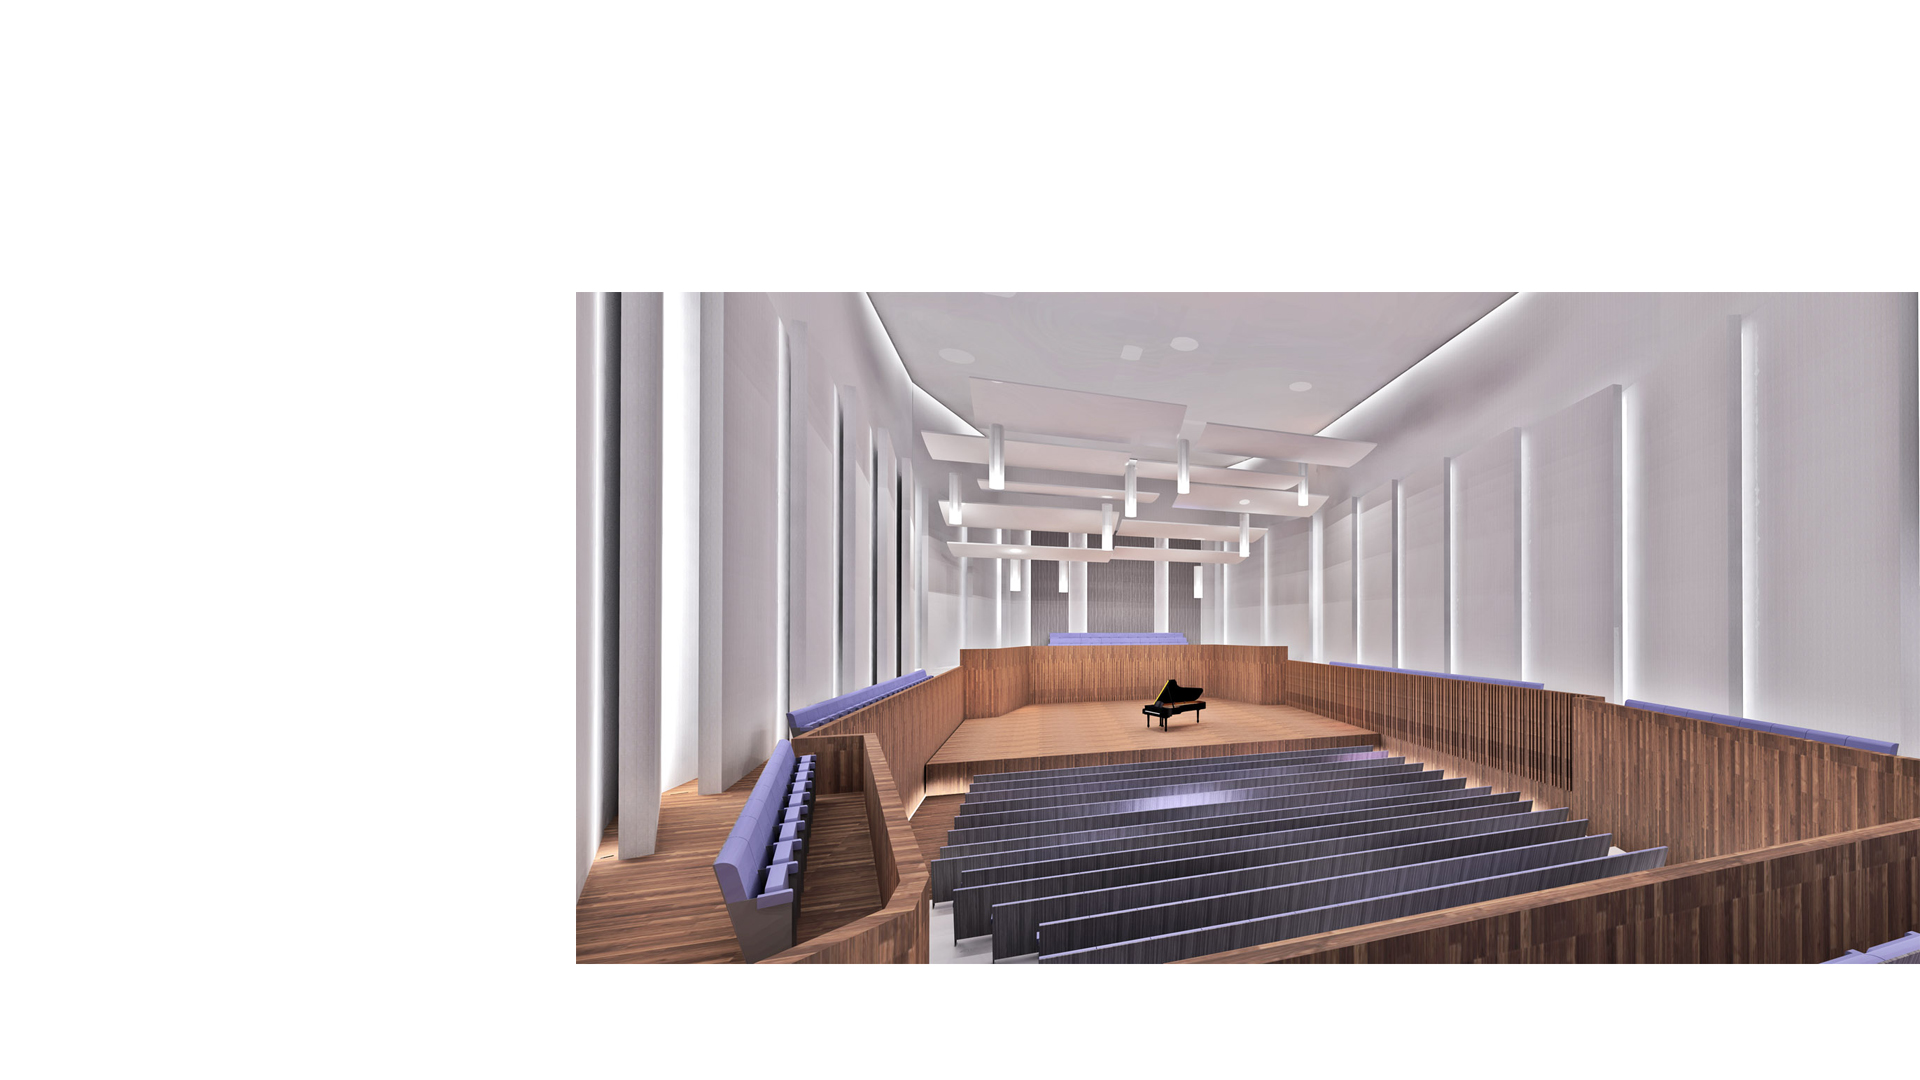 Image of the proposed recital hall interior looking toward the platform at the Kronberg Academy & Music School